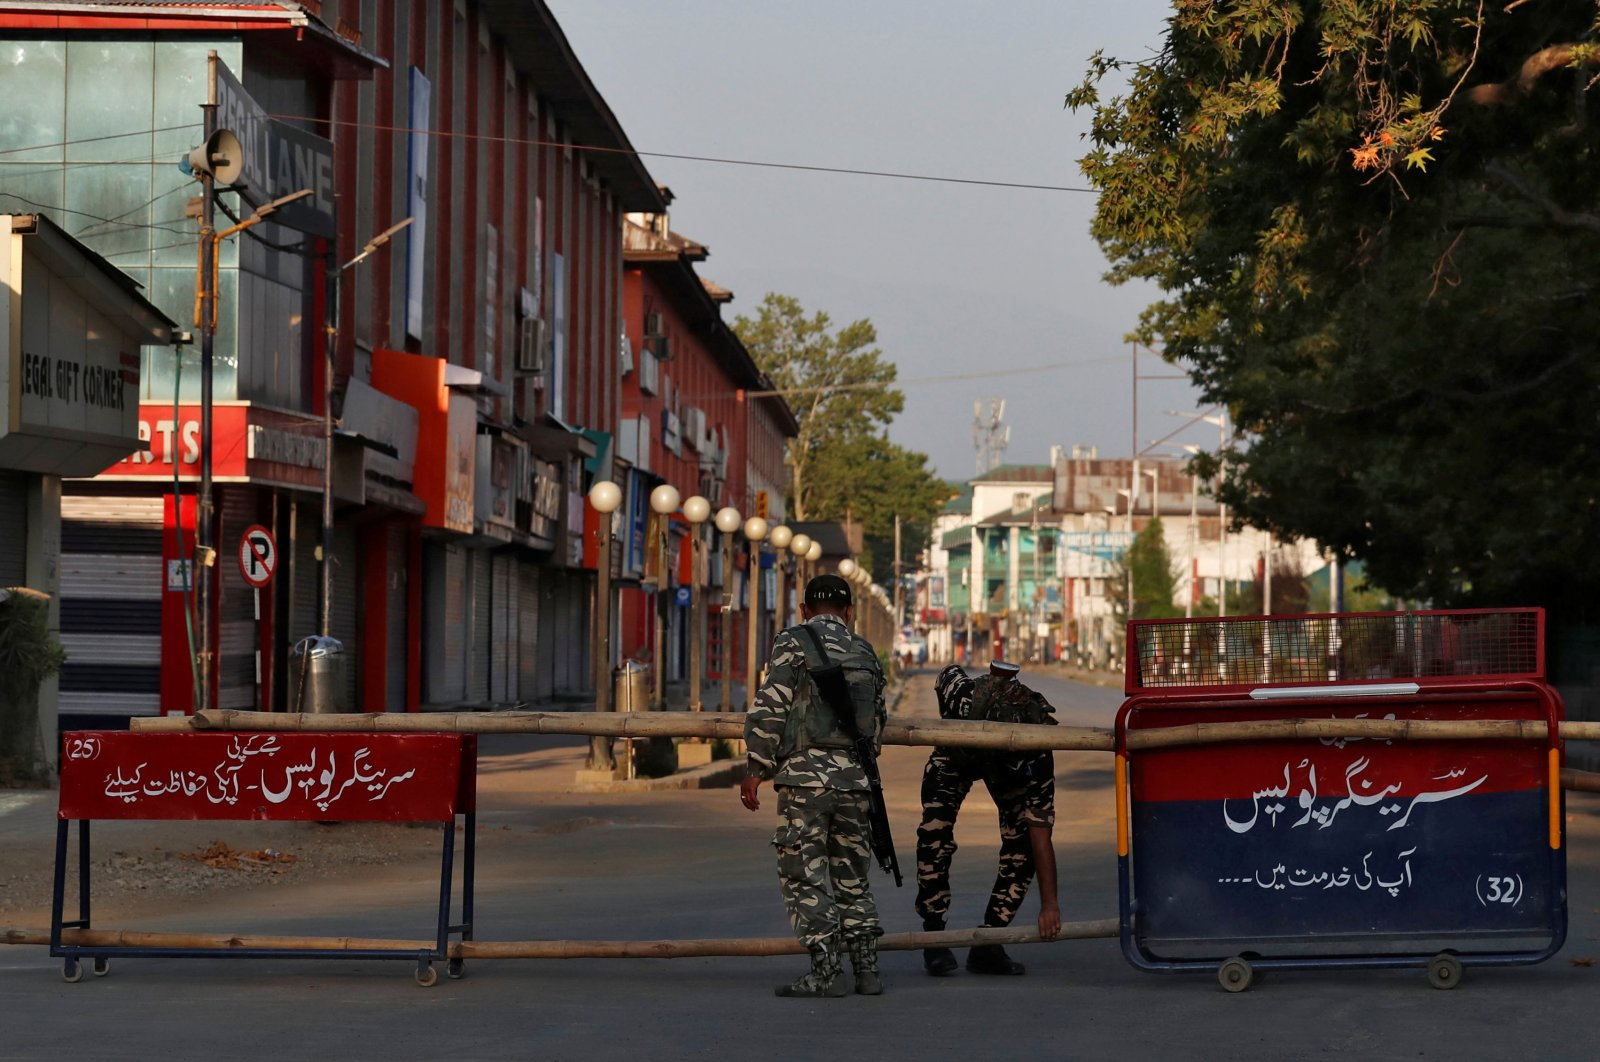 Indian officers put up a roadblock on an empty street during a lockdown on the first anniversary of the revocation of Kashmir's autonomy, in Srinagar, Aug. 5, 2020. (Reuters Photo)